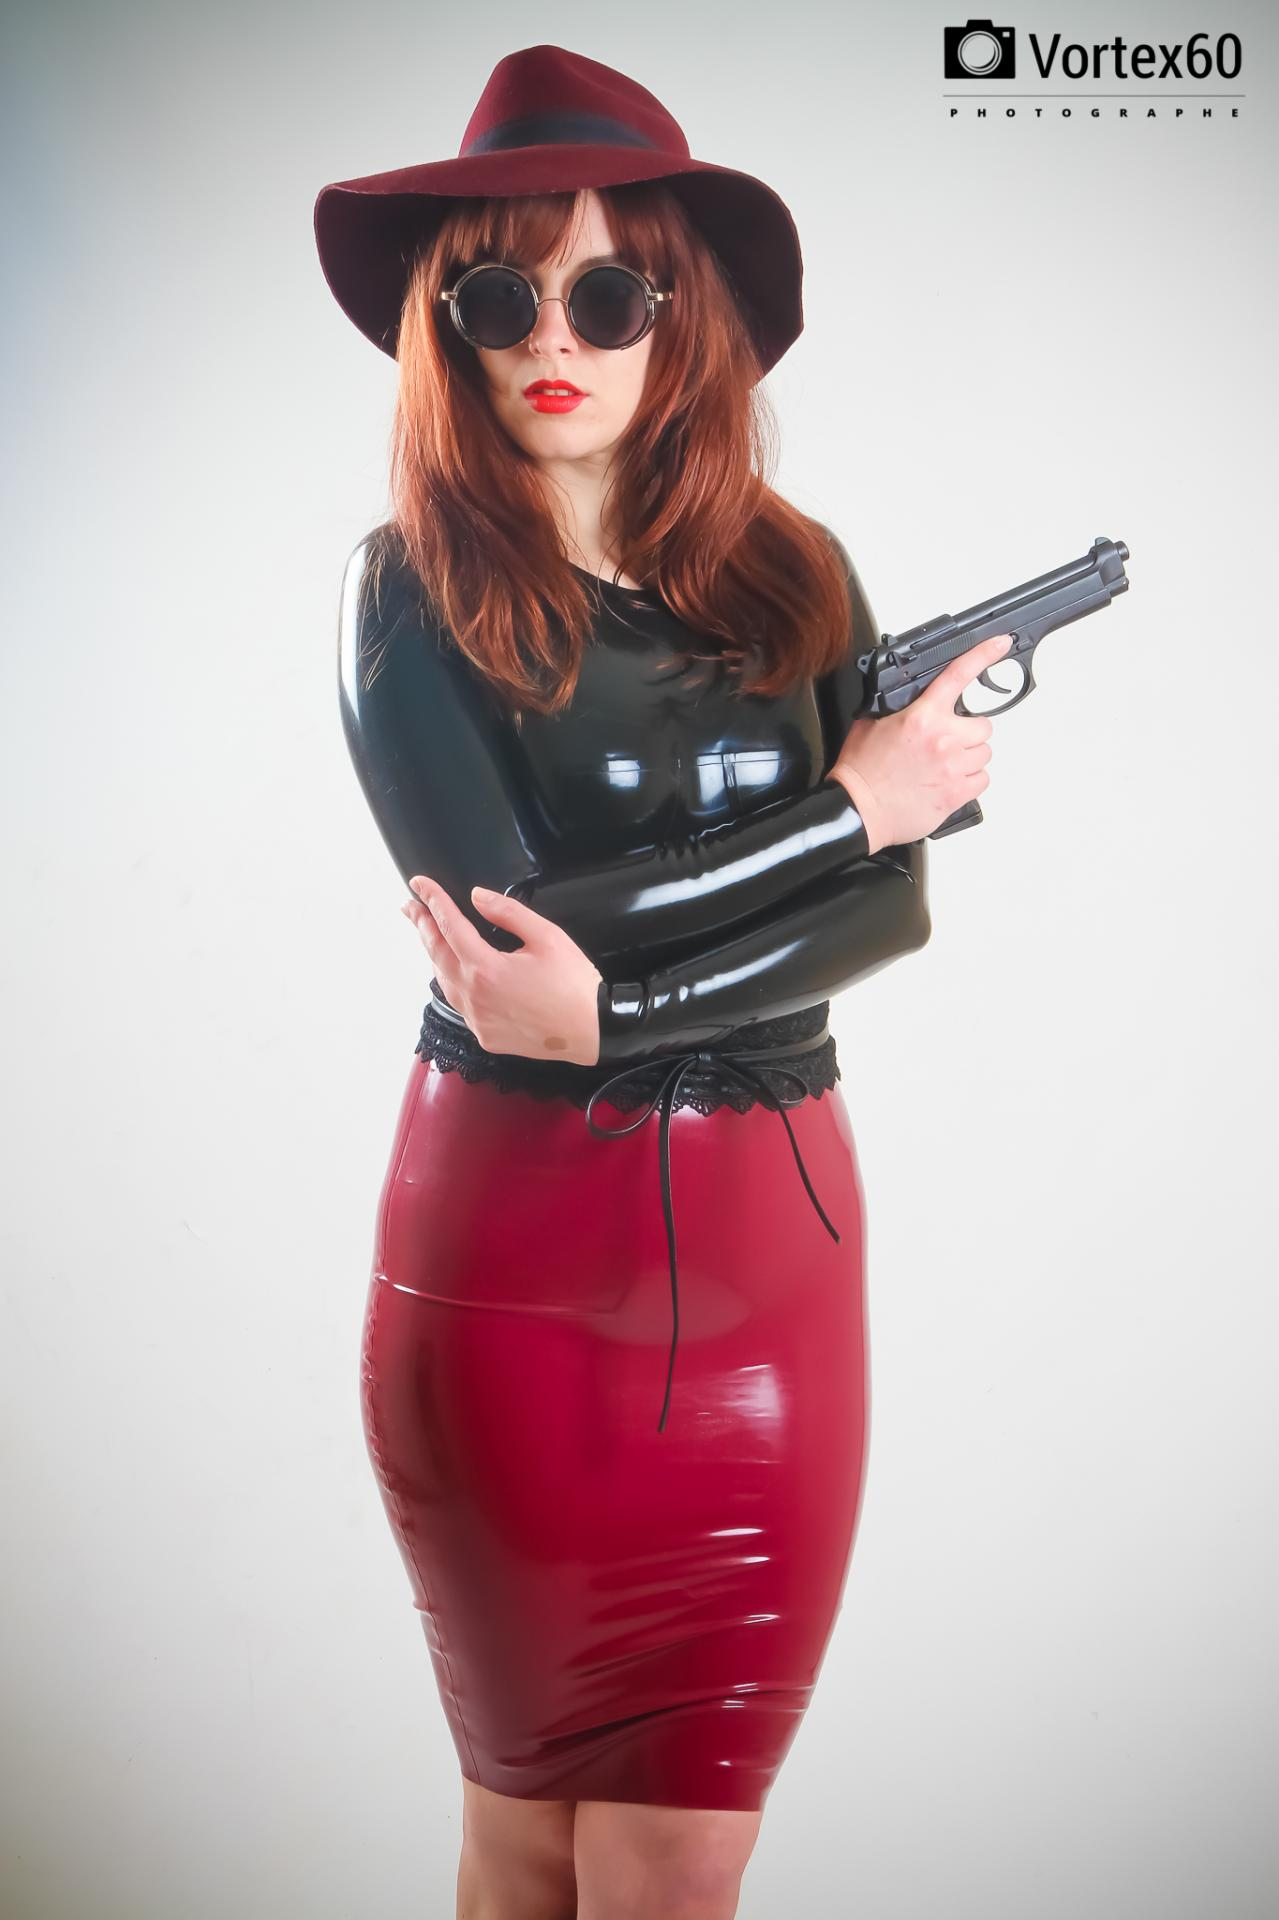 Femmes fatale (girls and guns) by vortex60 photographe